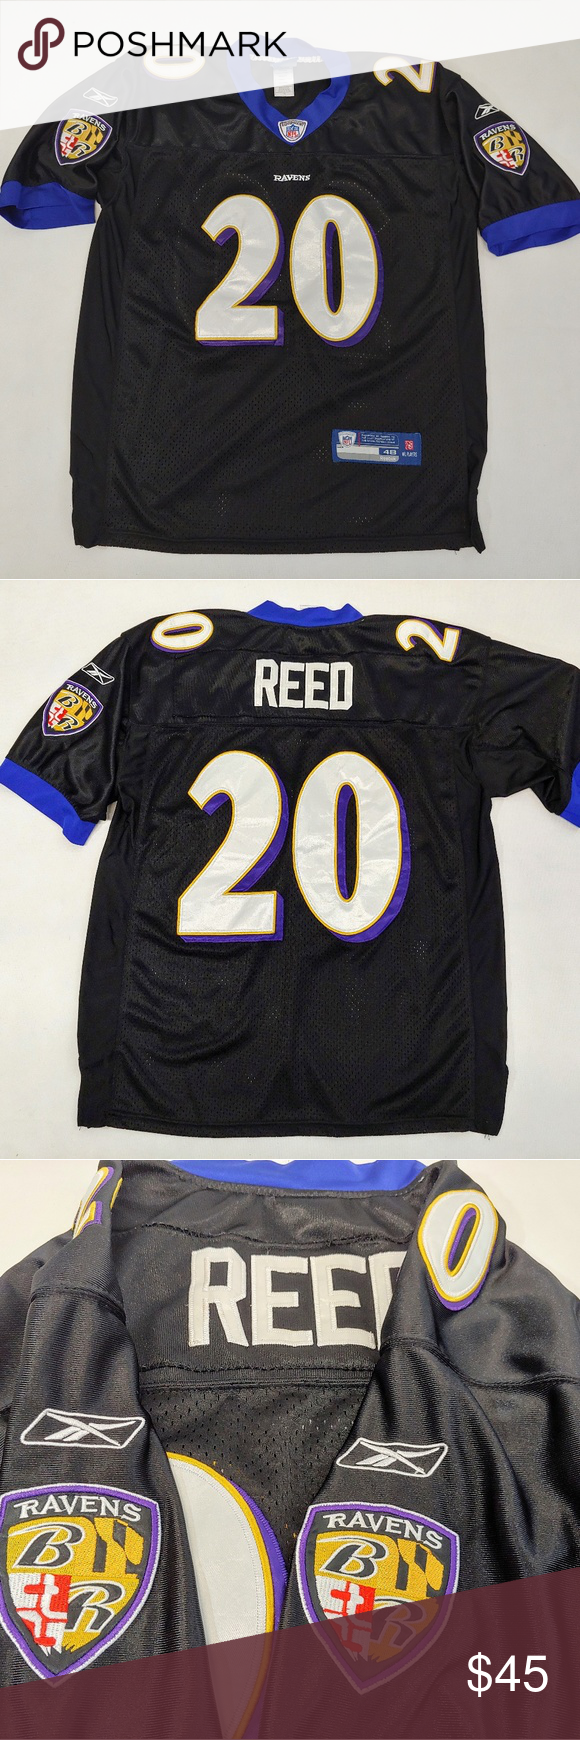 newest collection 23f1b 5254a Baltimore Ravens Reed Jersey Reebok #20 Size 48 Ed Reed #20 ...